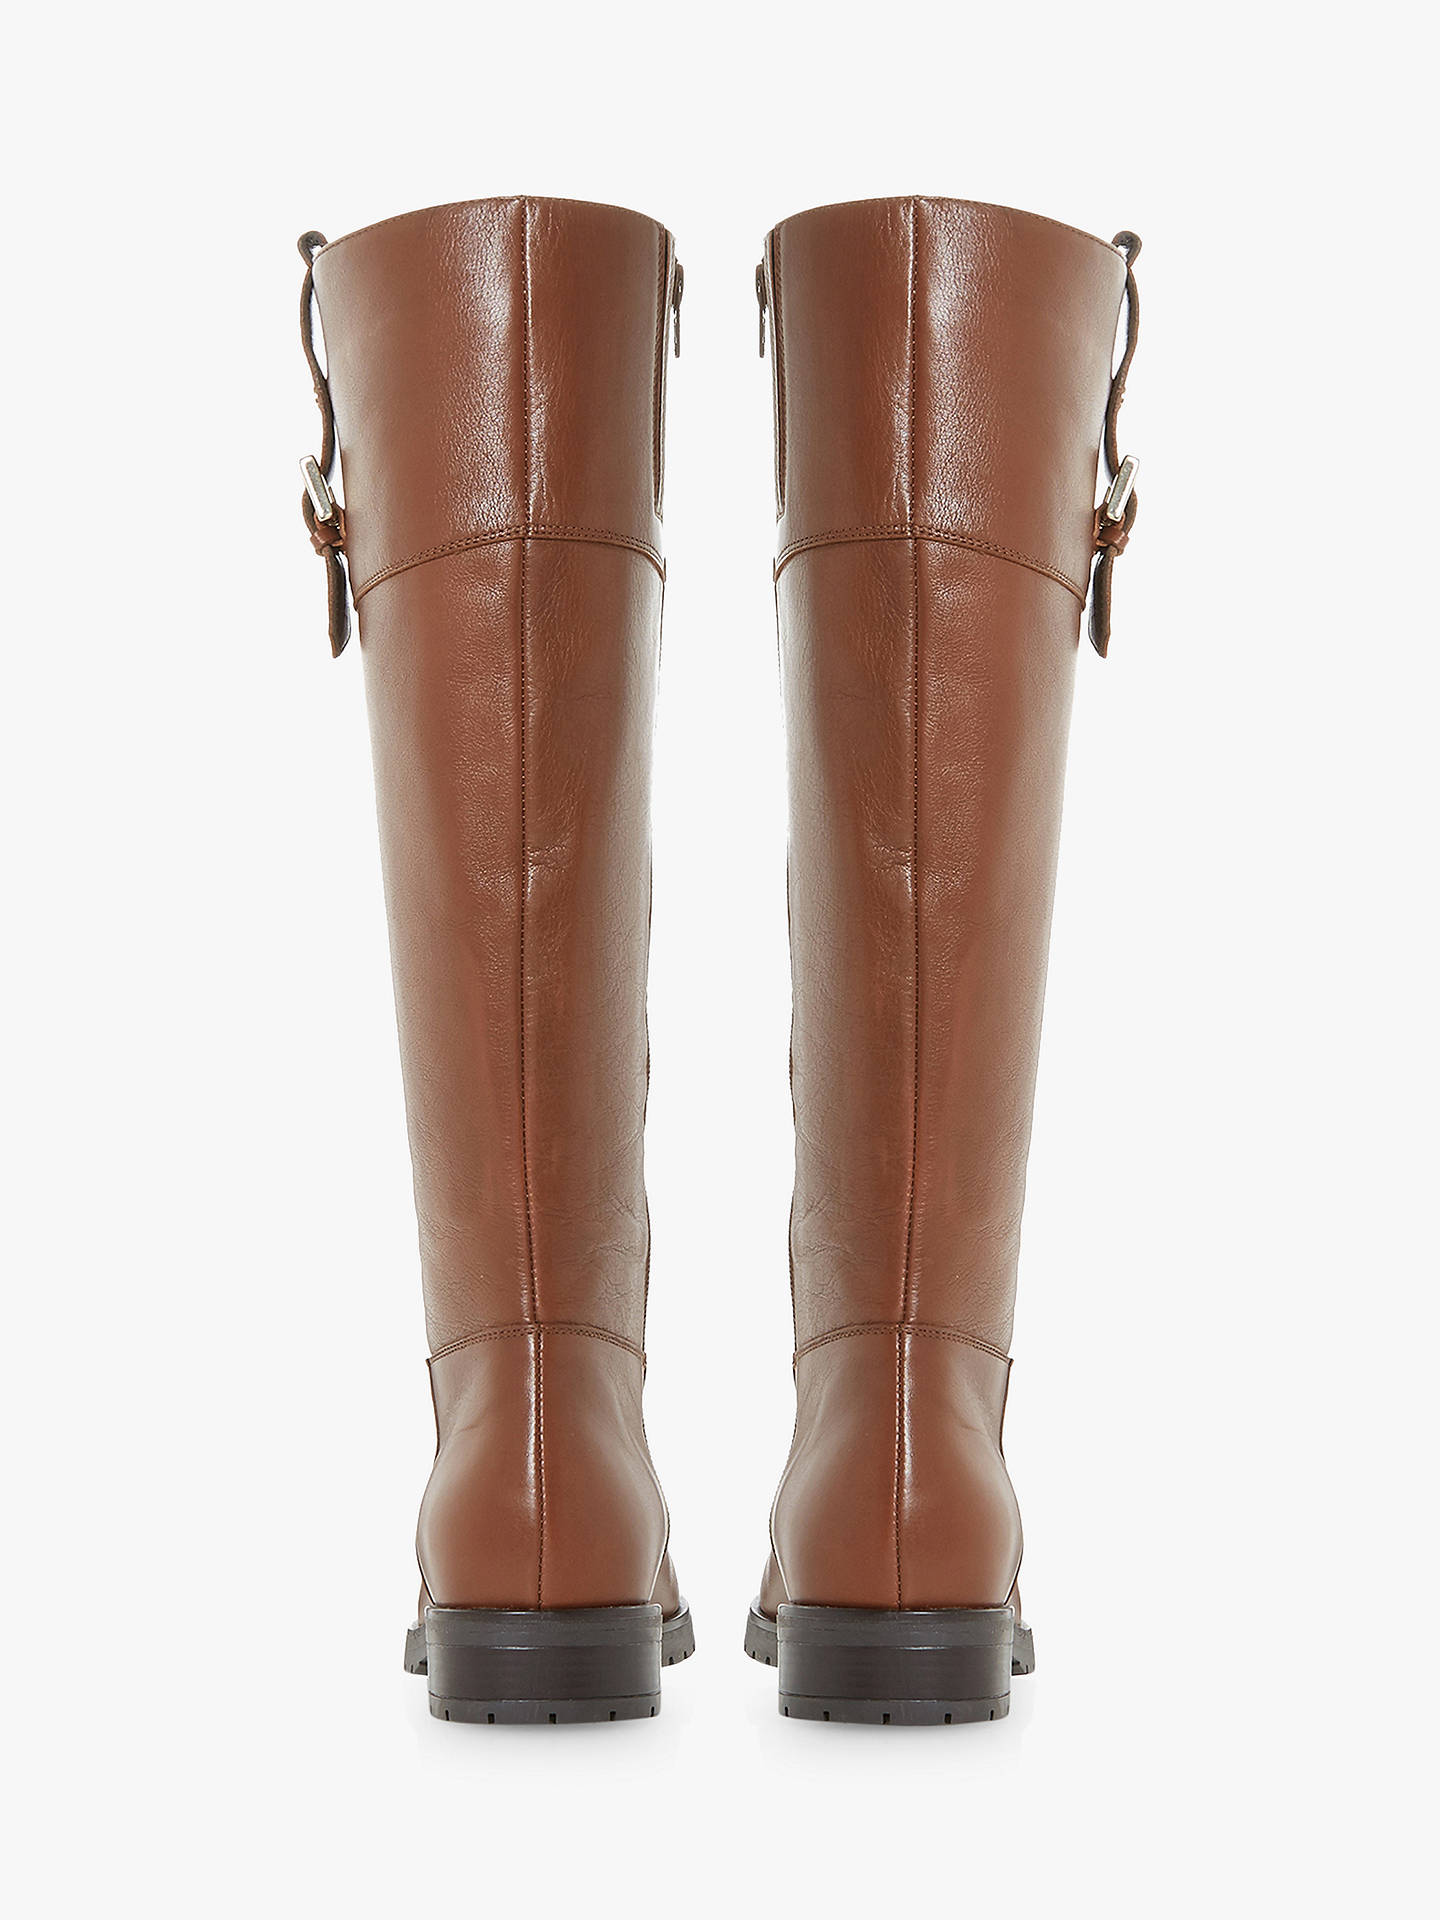 BuyDune Vinne Knee High Boots, Tan Leather, 5 Online at johnlewis.com